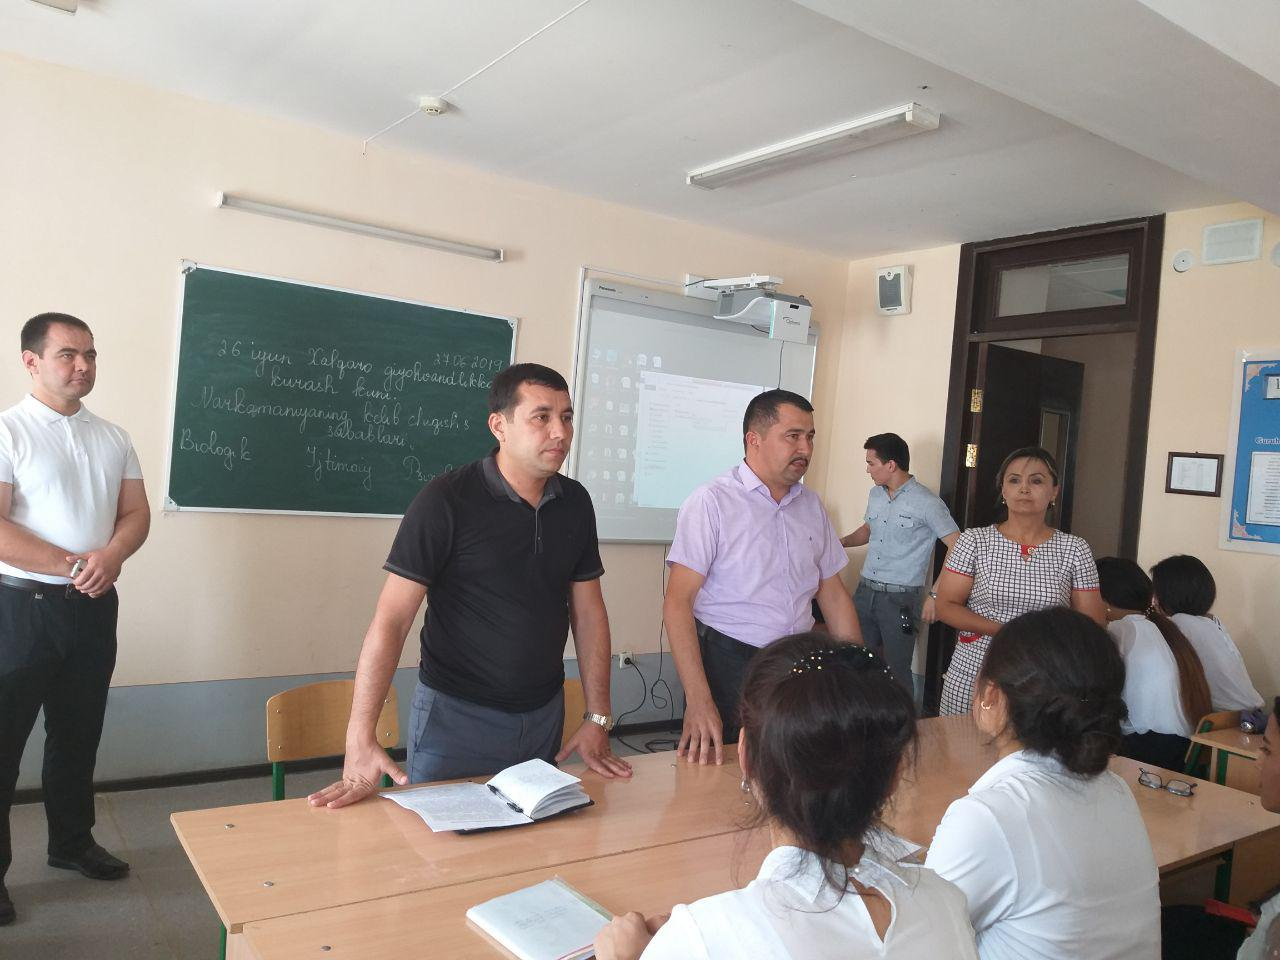 On June the 27th, 2019, an event was held at the Faculty of Foreign Philology, along with representatives of collaborating social organizations, dedic